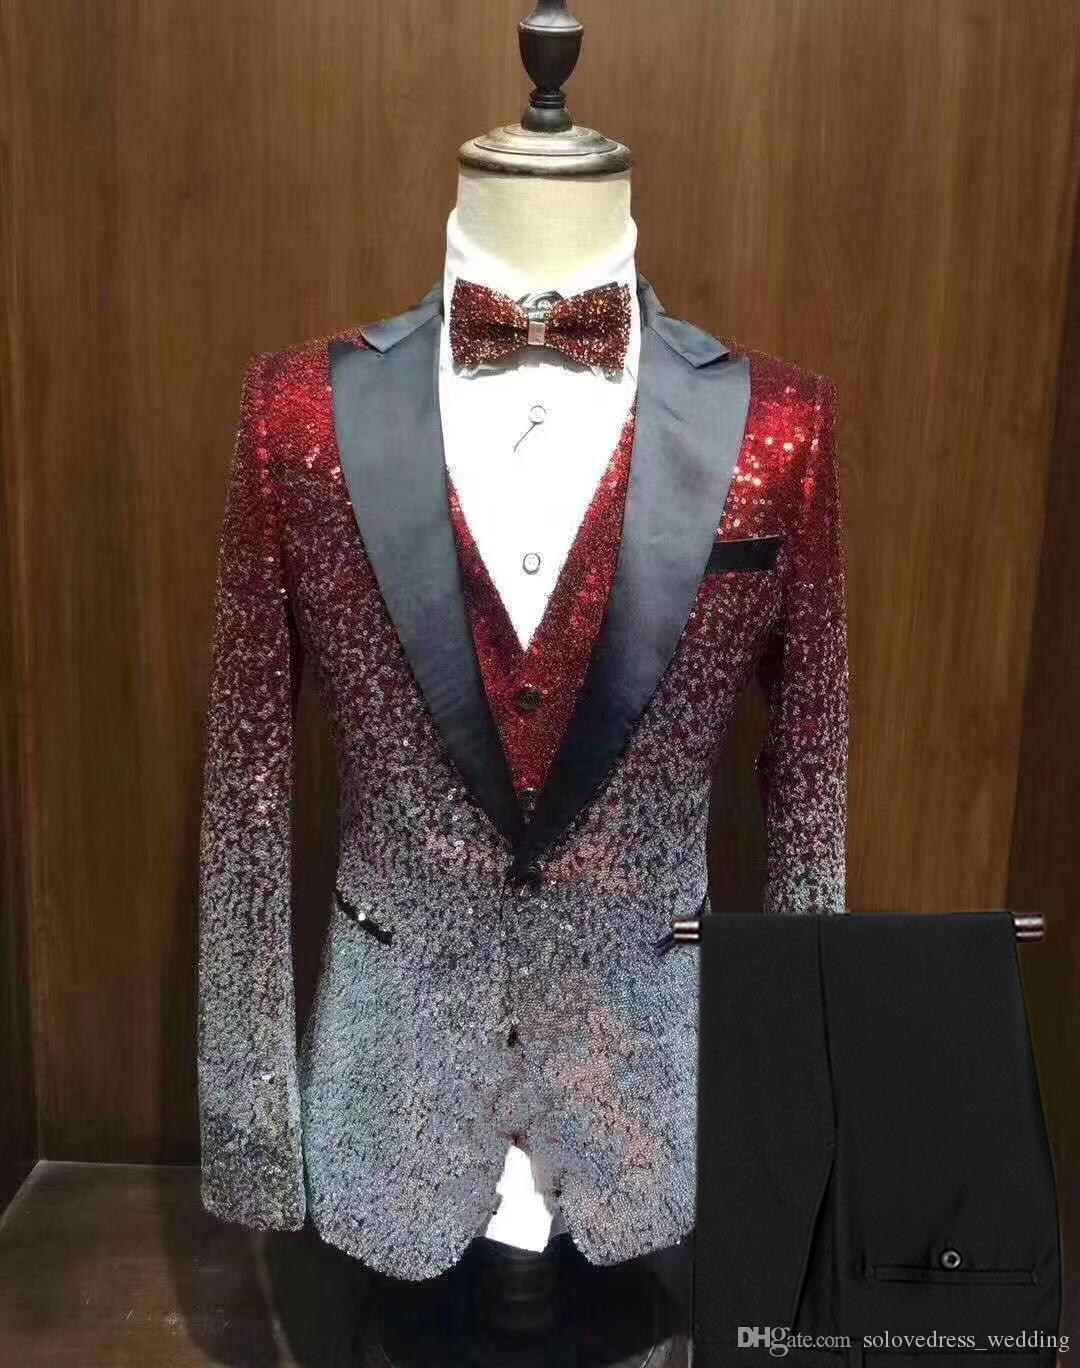 17cd3a5c76c06b New Men Suit Shiny Gradually Changing Color Sequin Mens Suit Peak Notch  Lapel Tuxedo For Wedding Party GroomBlazer++Vest+Pants Men Wedding Suits  Mens Formal ...